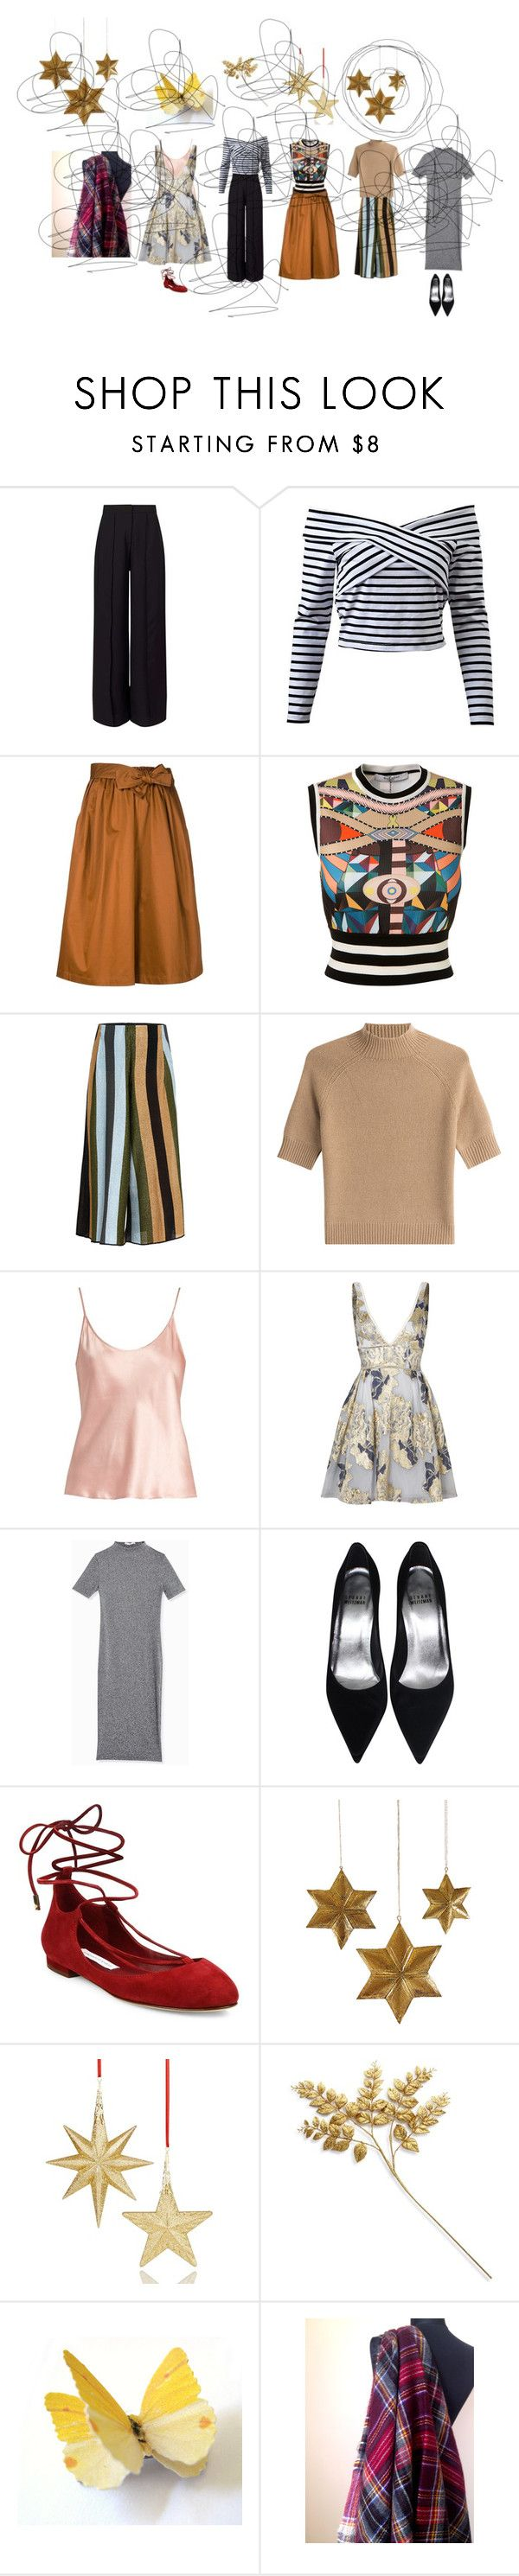 """""""Christmas gift"""" by talma-vardi ❤ liked on Polyvore featuring Miss Selfridge, Tome, Givenchy, Circus Hotel, Theory, La Perla, Notte by Marchesa, Diane Von Furstenberg, Cody Foster & Co. and Holiday Lane"""